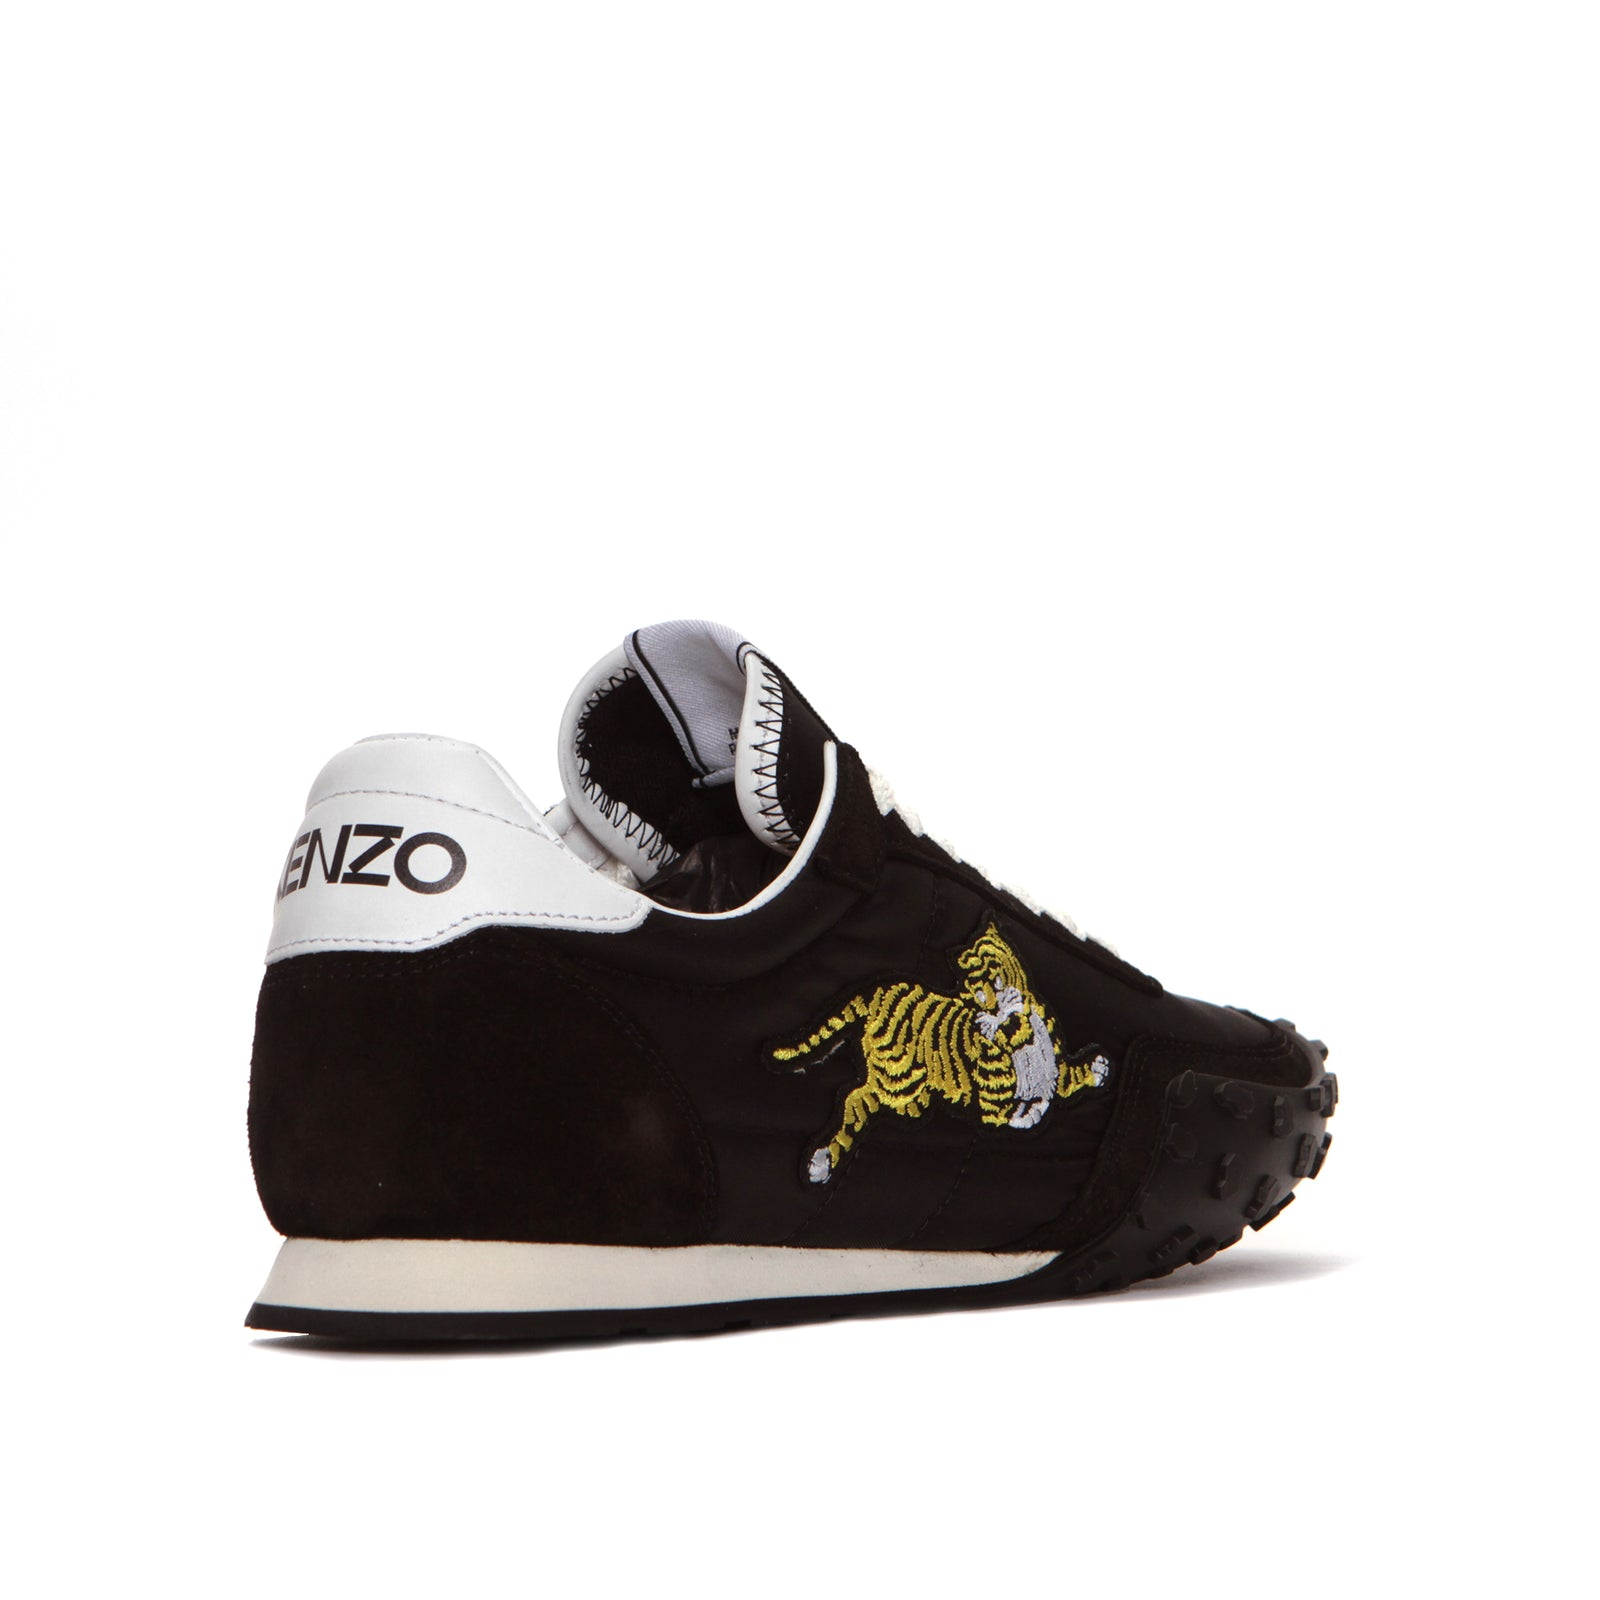 Kenzo Paris Move Lace Up Men's Sneakers Black